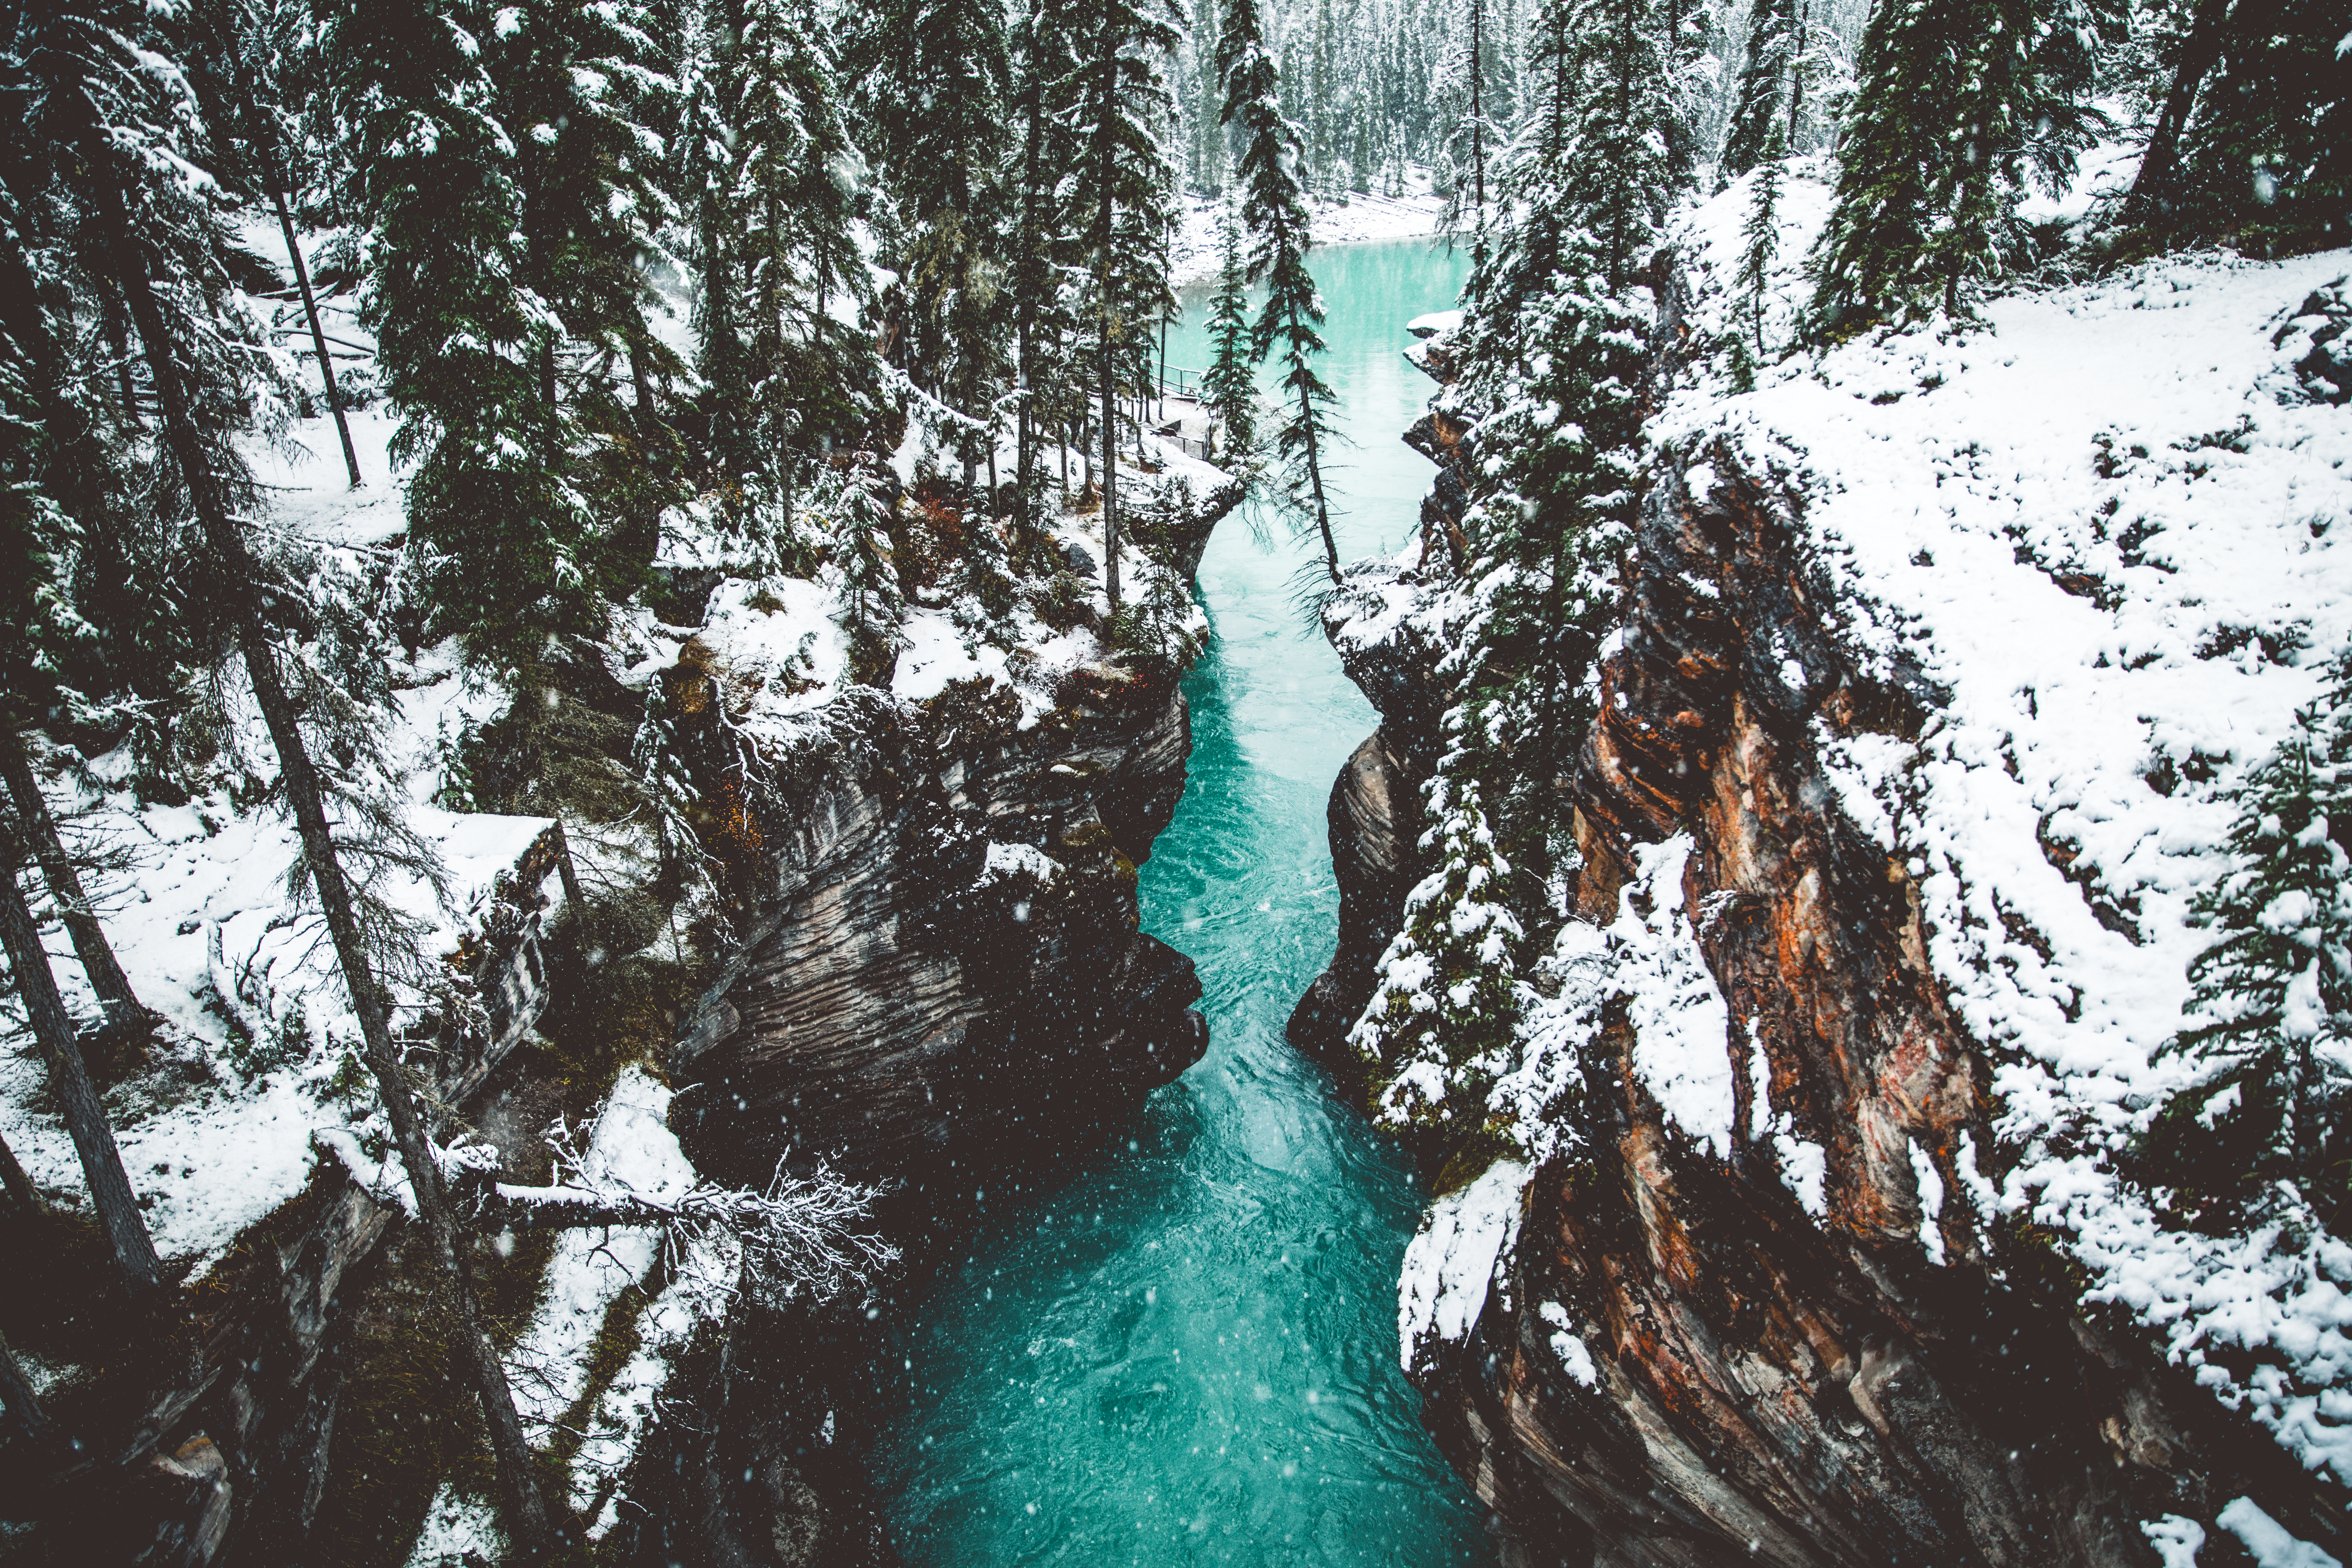 86435 download wallpaper Nature, Waterfall, Break, Precipice, Canyon, Athabasca, Canada screensavers and pictures for free